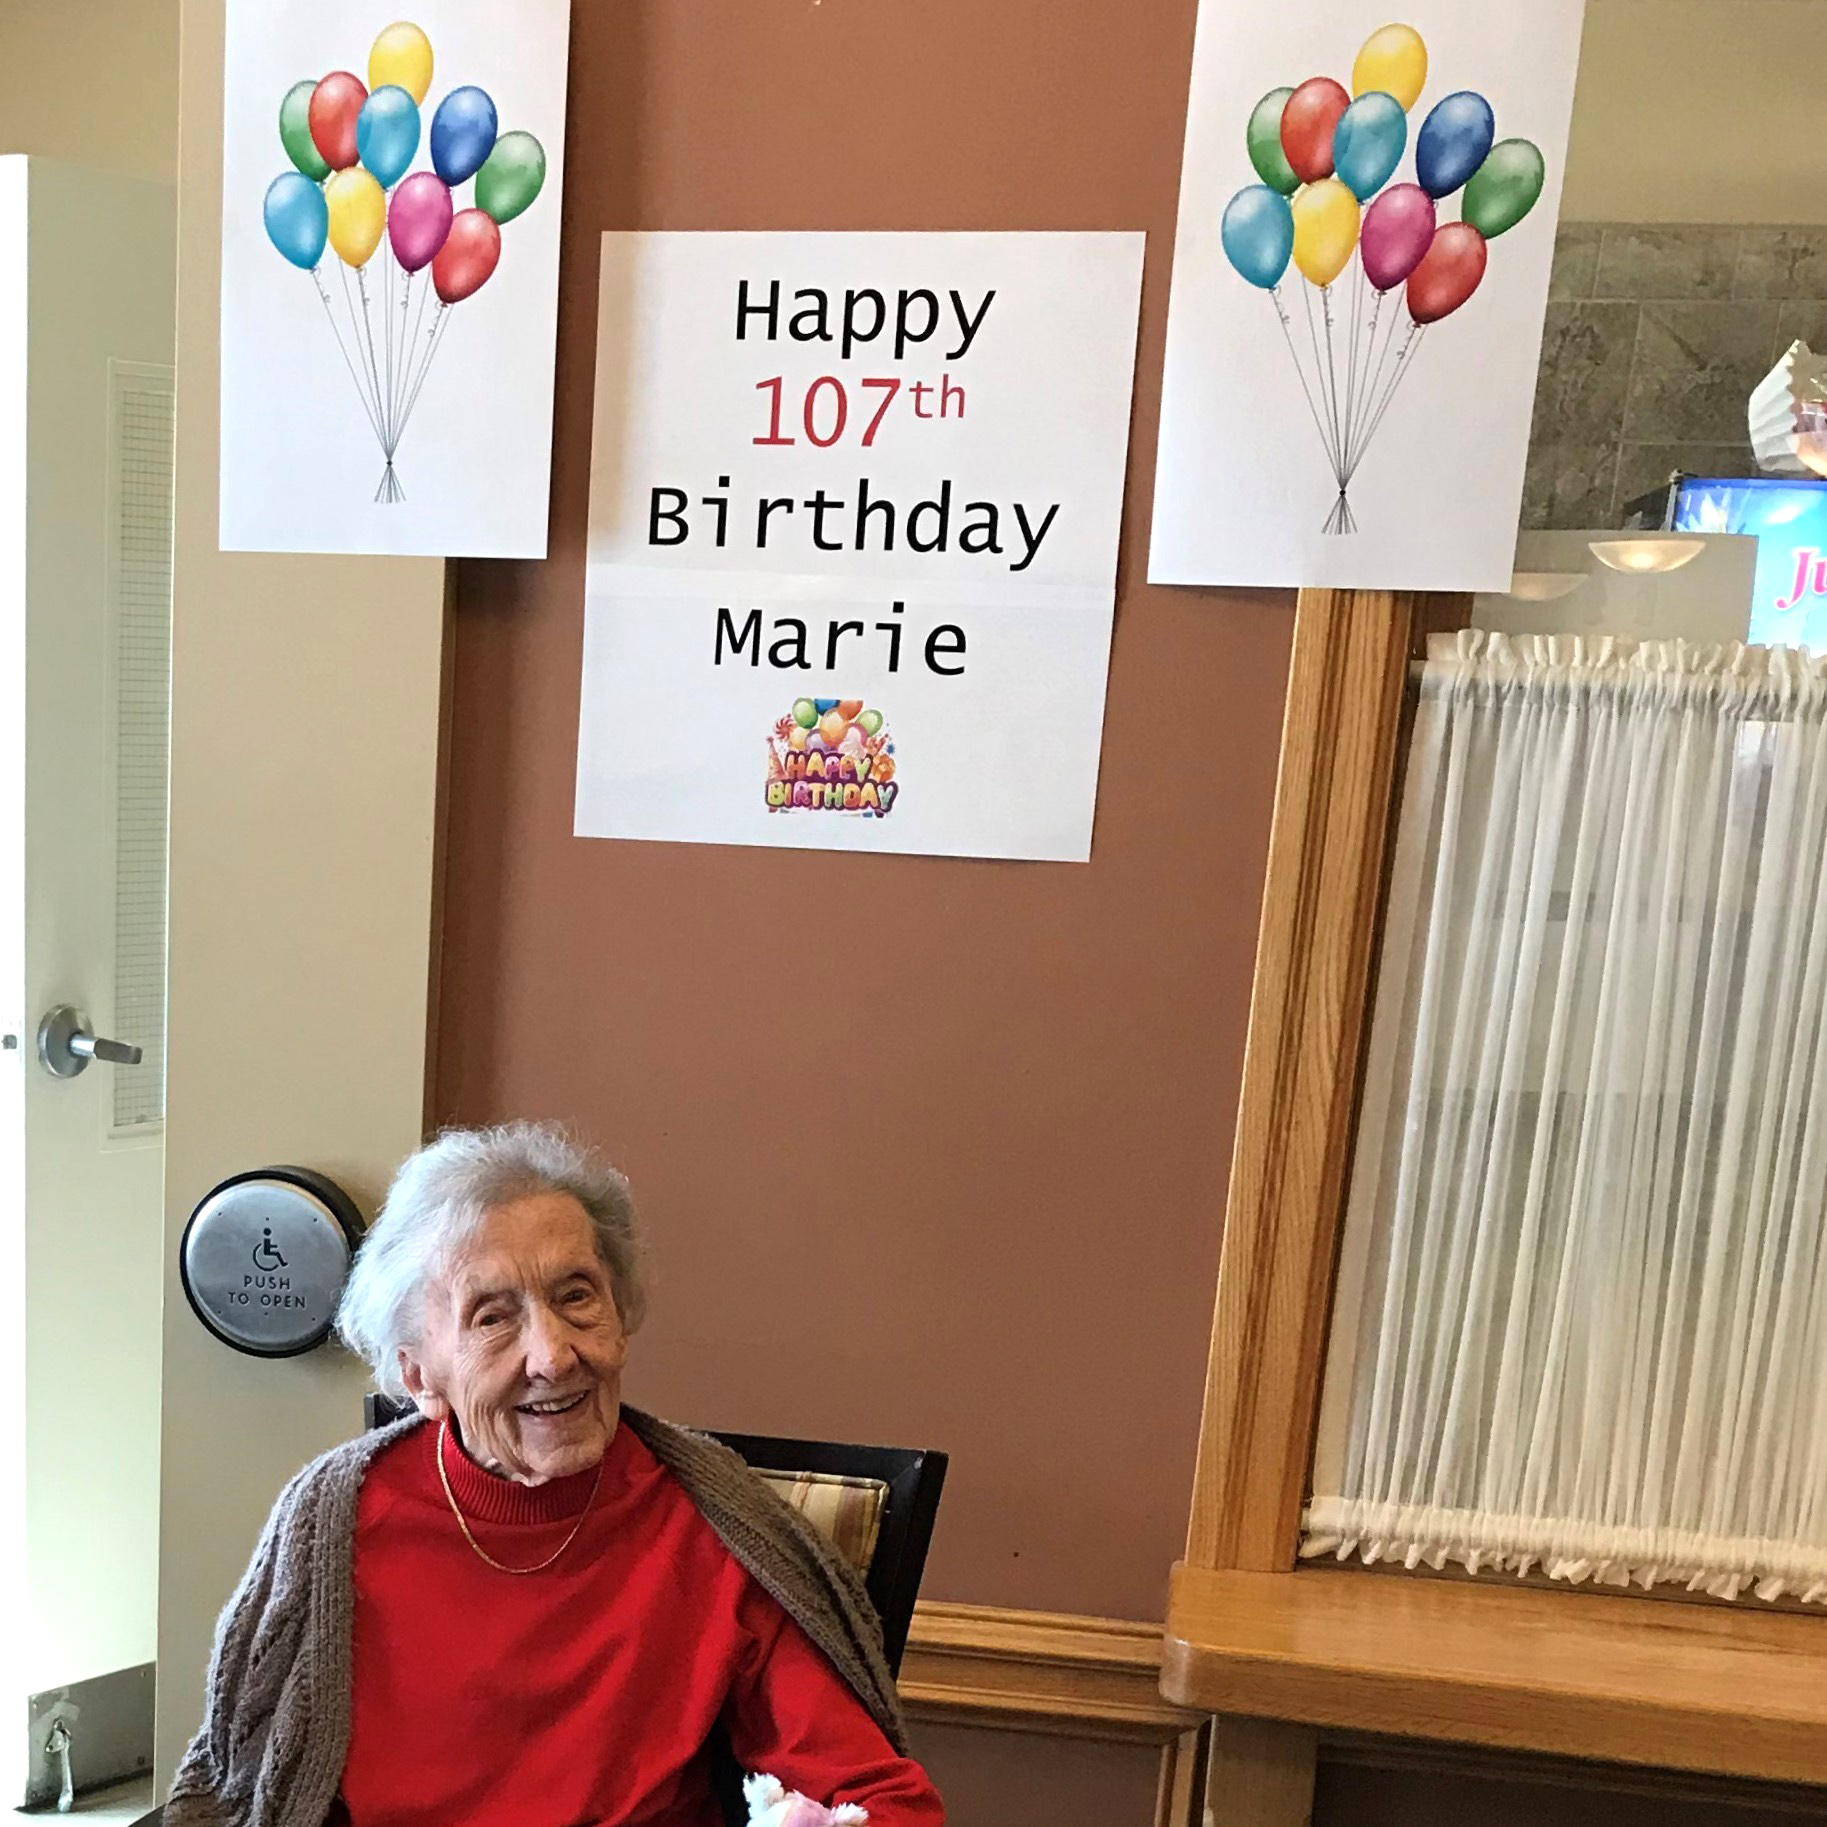 A resident celebrating her 107th birthday.